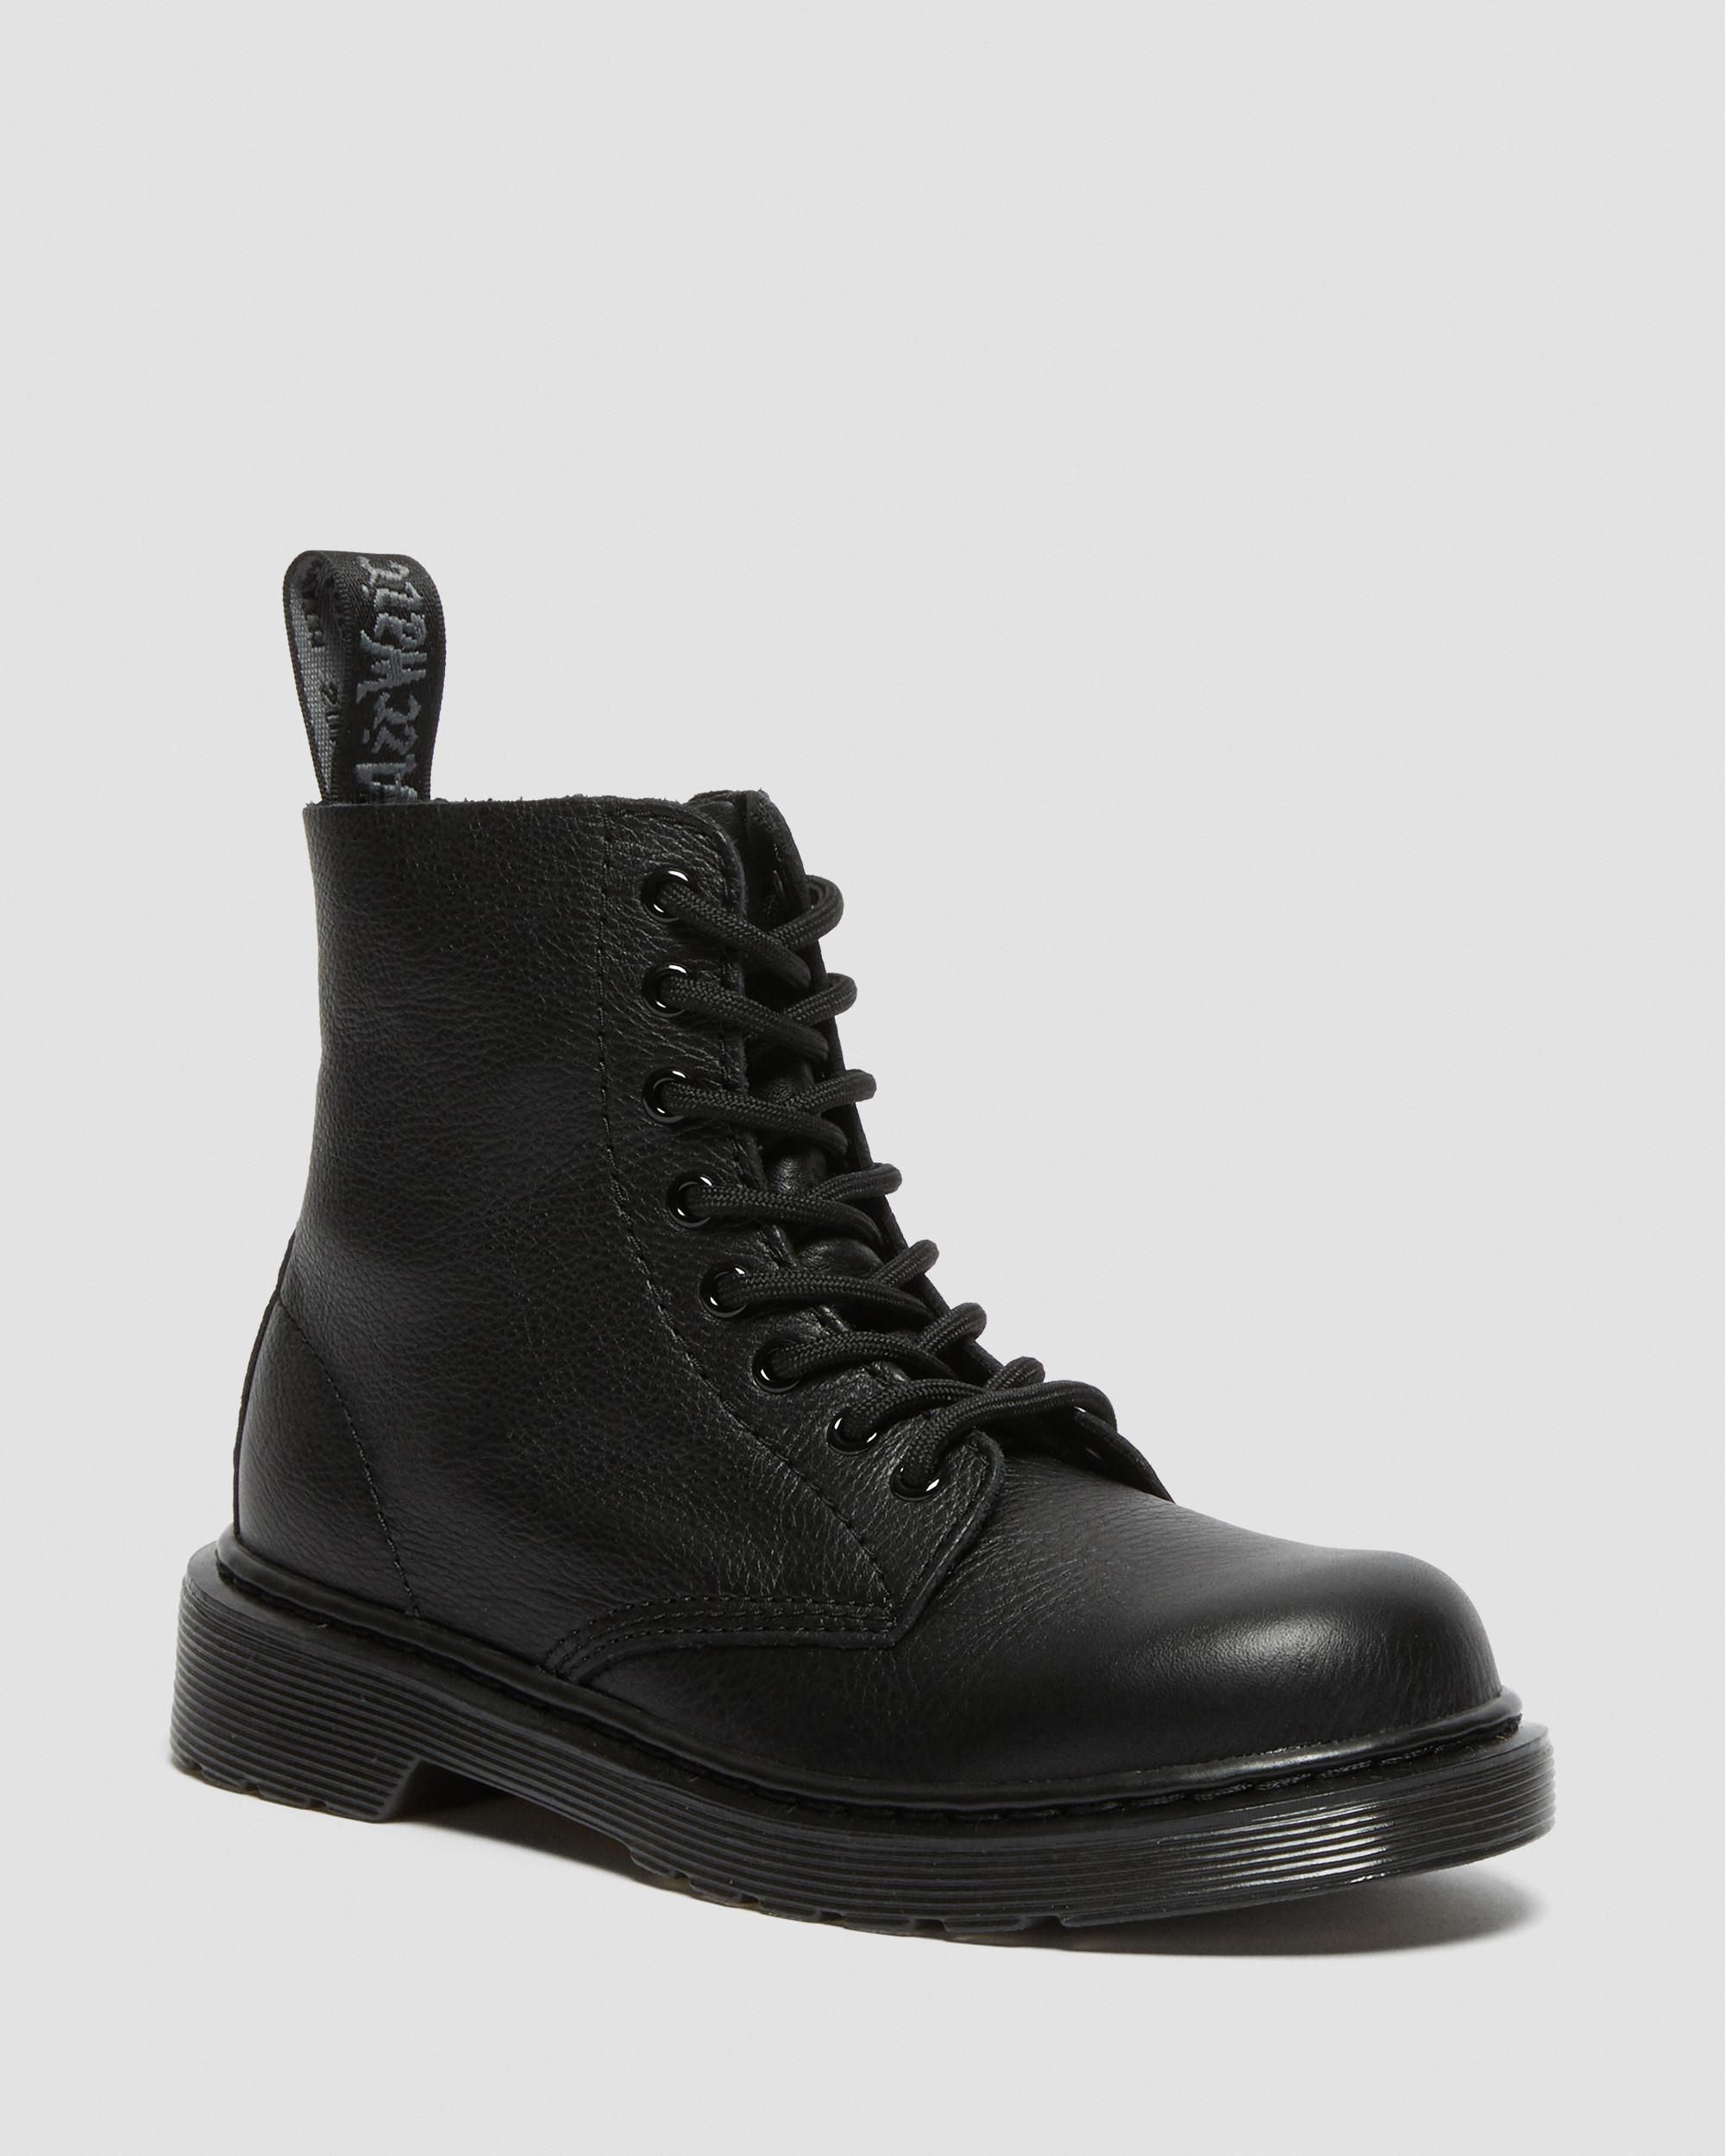 JUNIOR 1460 PASCAL LEATHER LACE UP BOOTS | Gifts for Kids